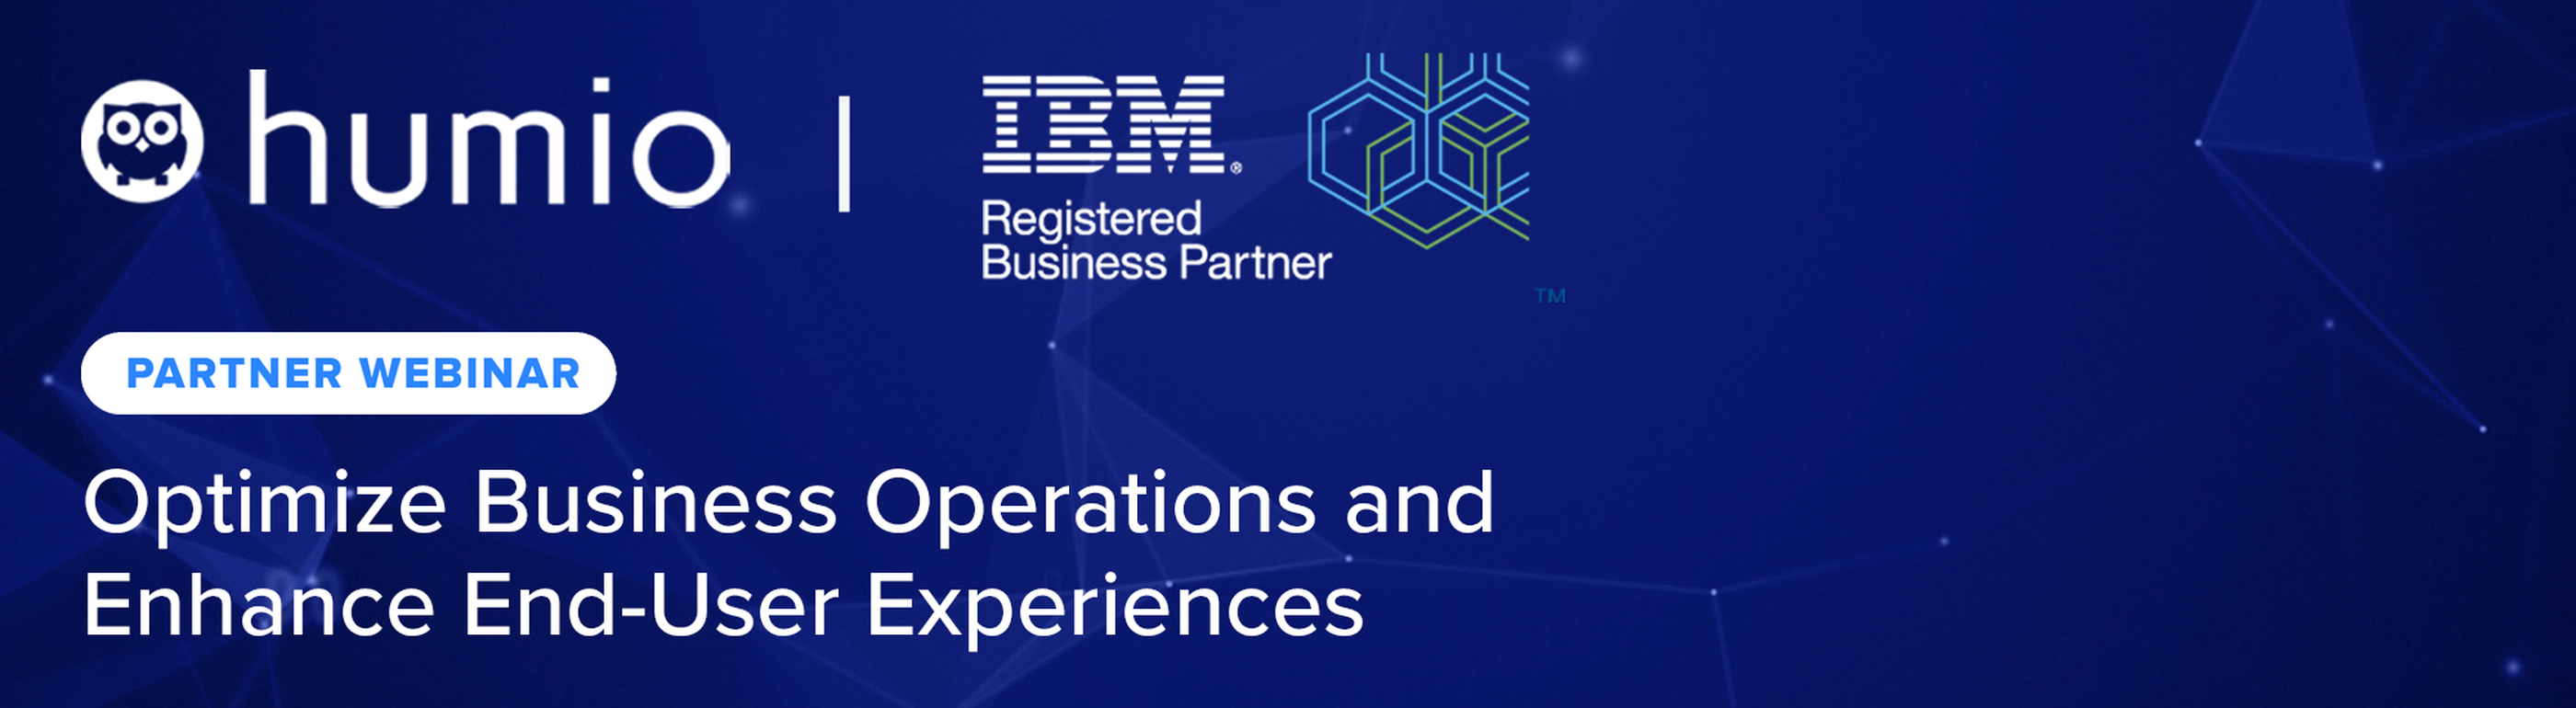 Optimize business operations and enhance end-user experiences